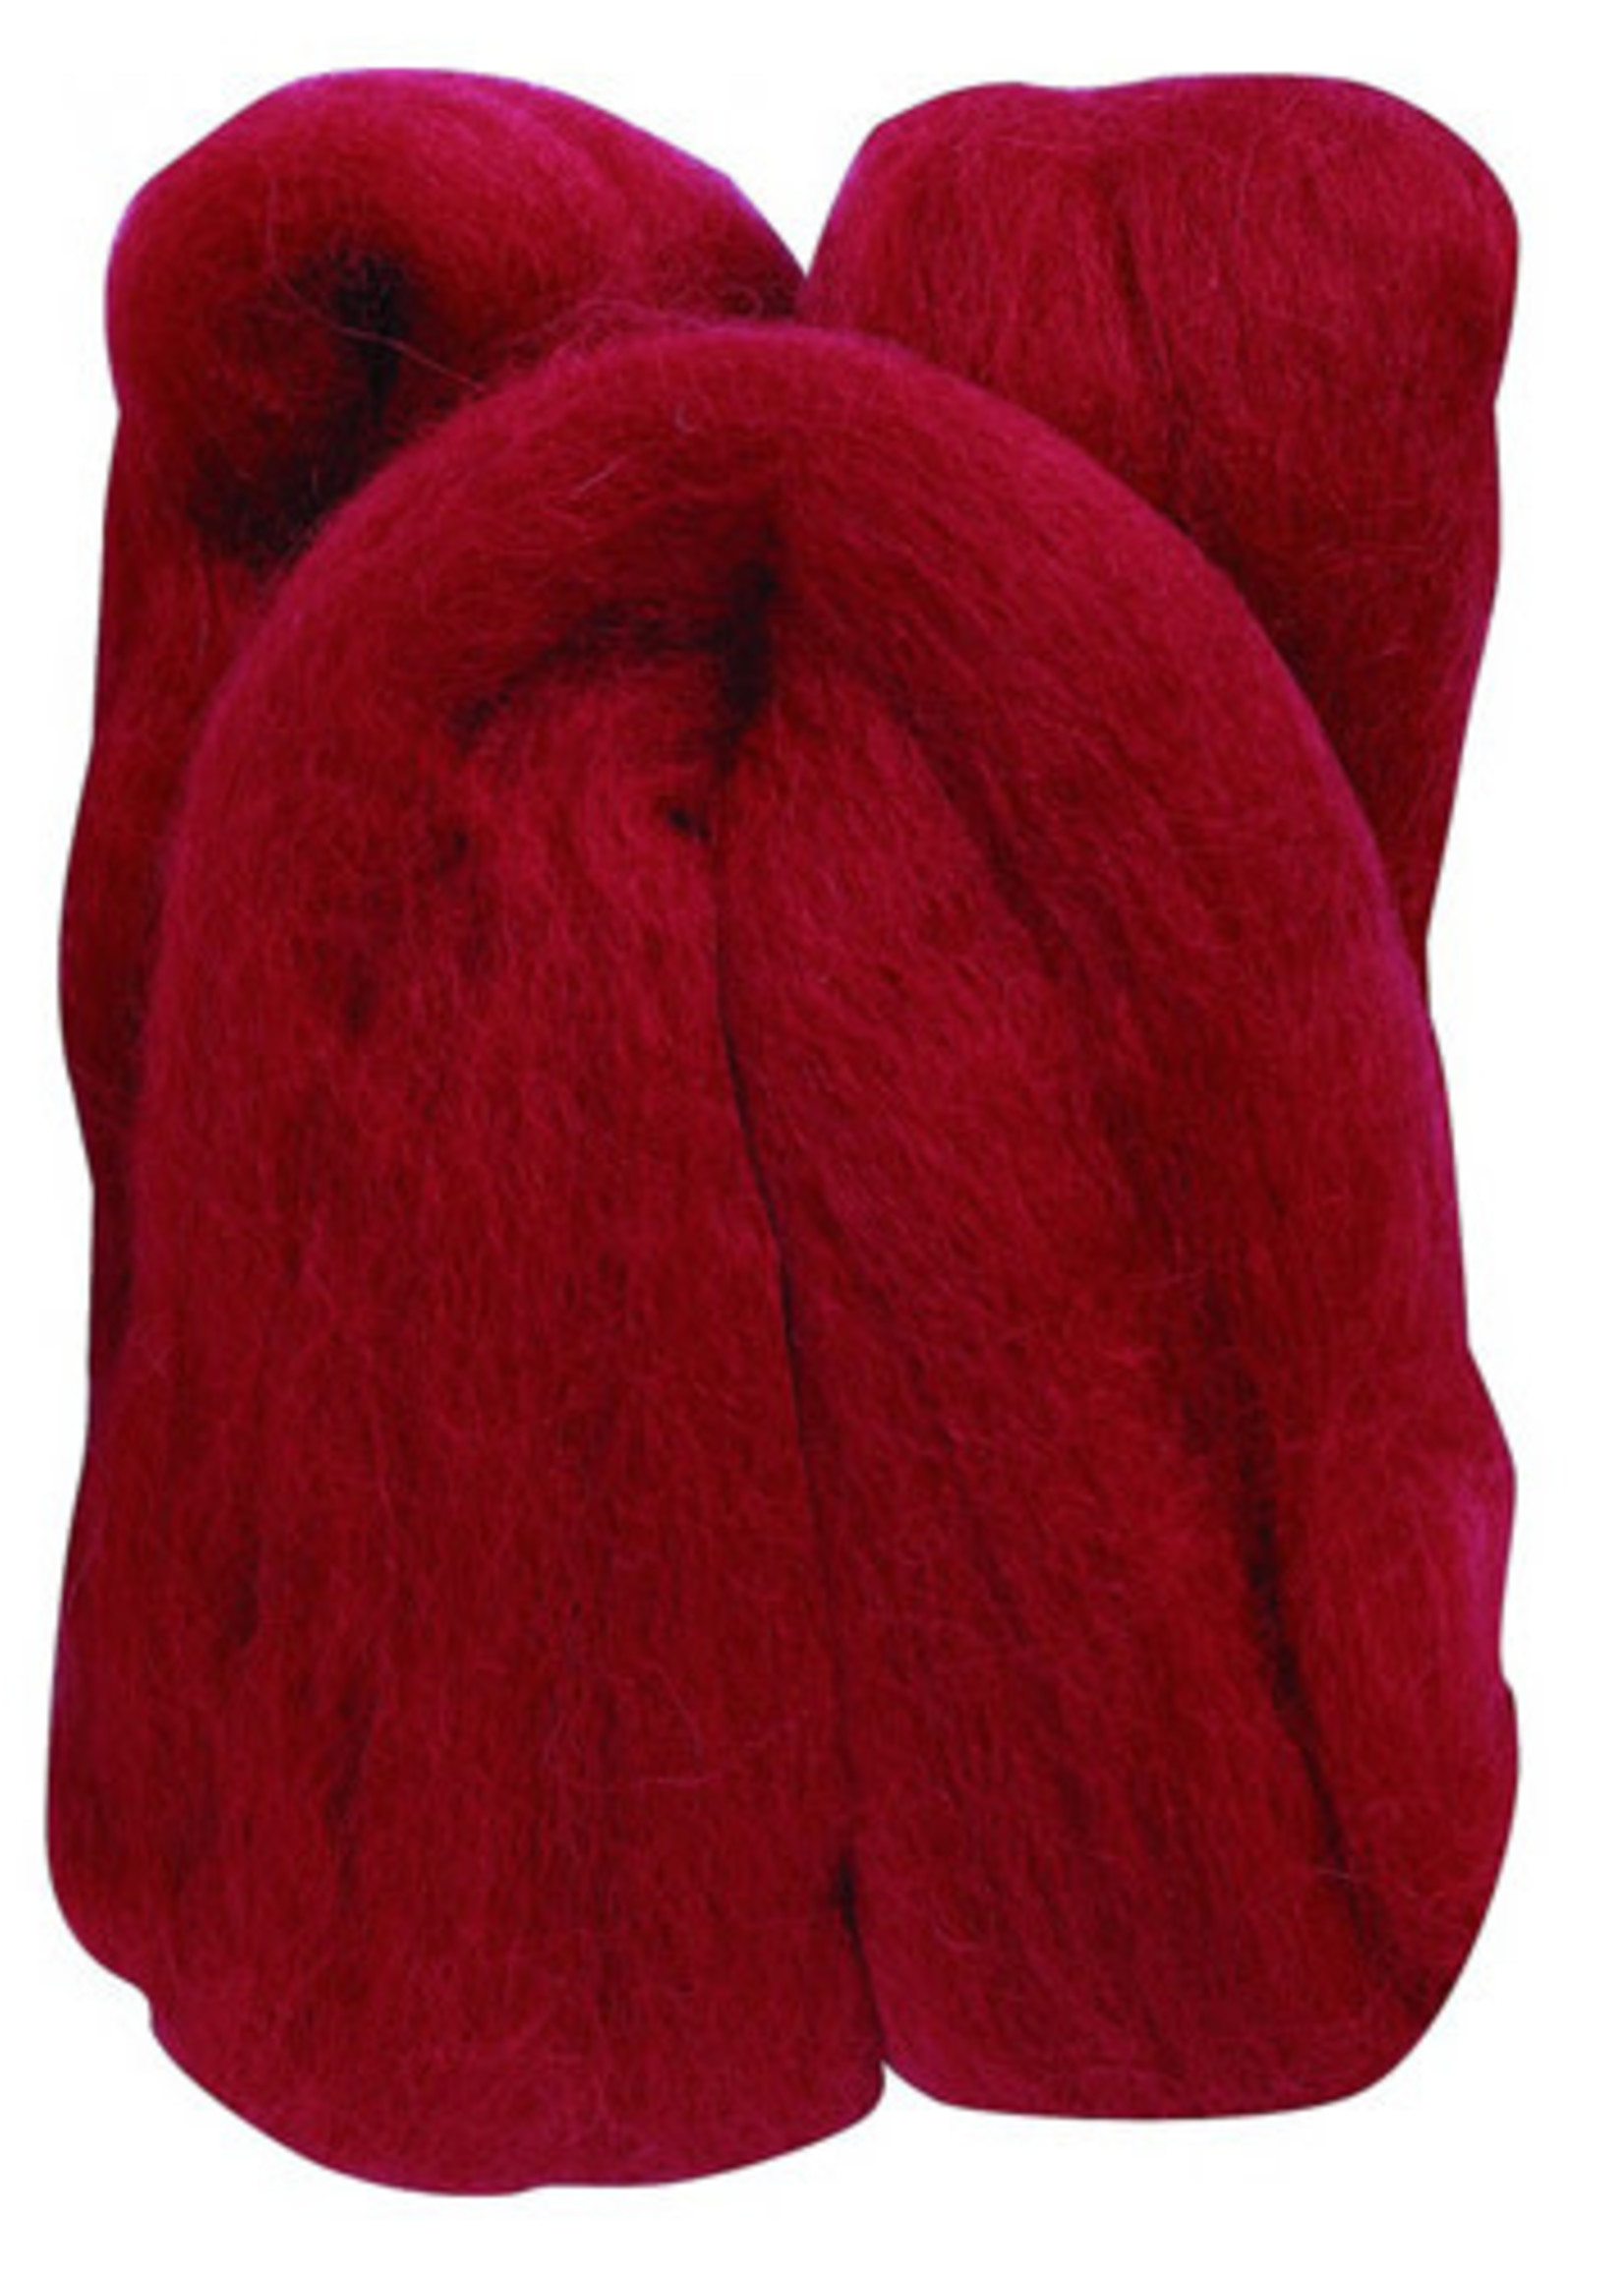 Clover Clover Roving - Wool - #7927 Red